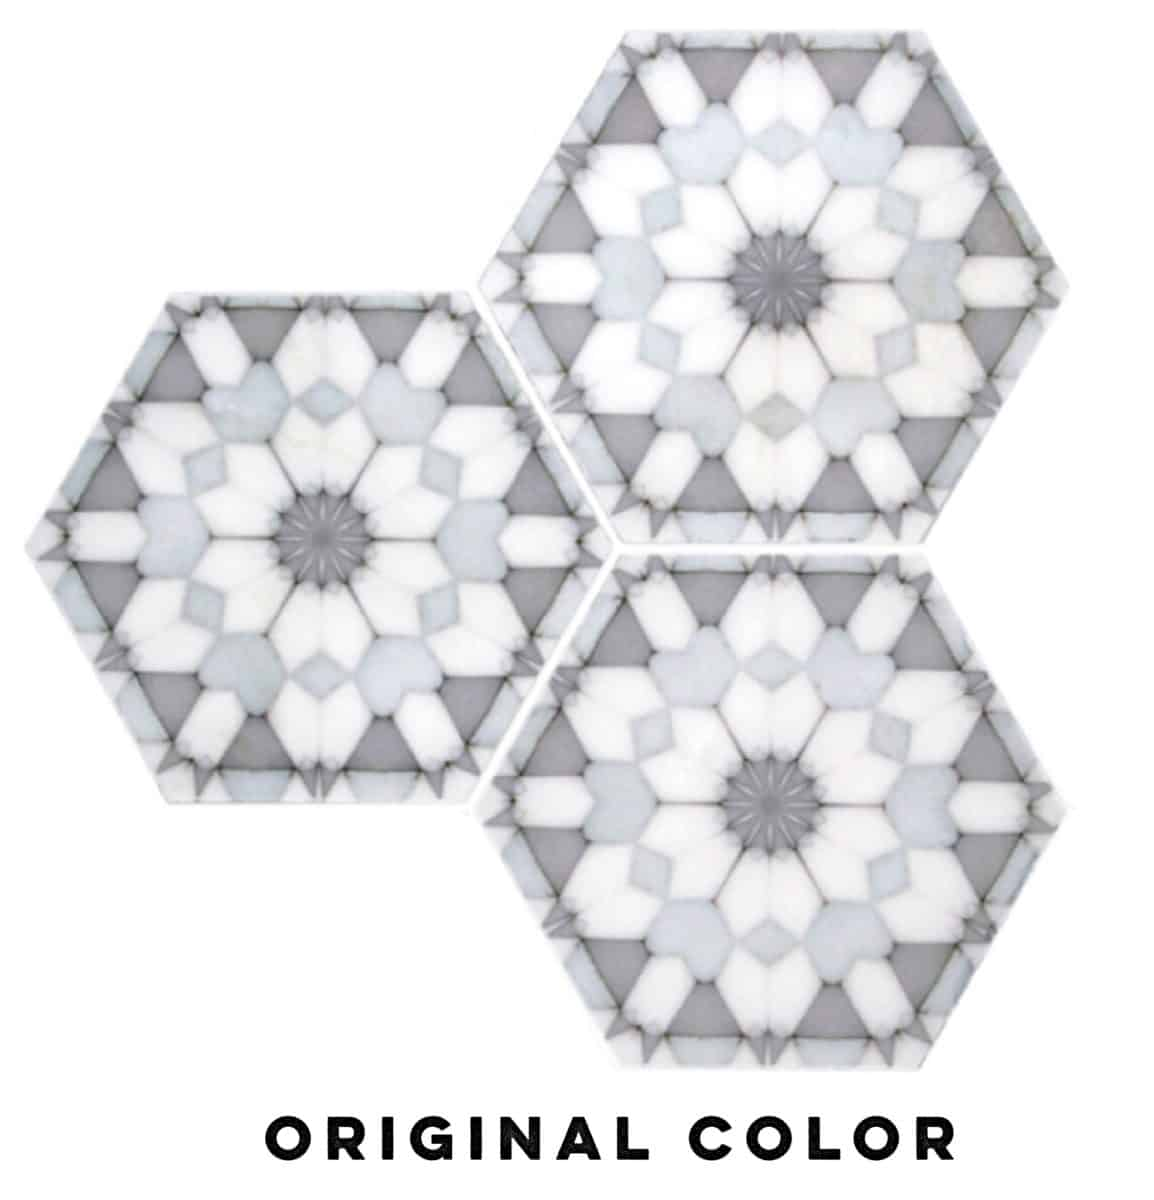 Alston hexagon Tiles